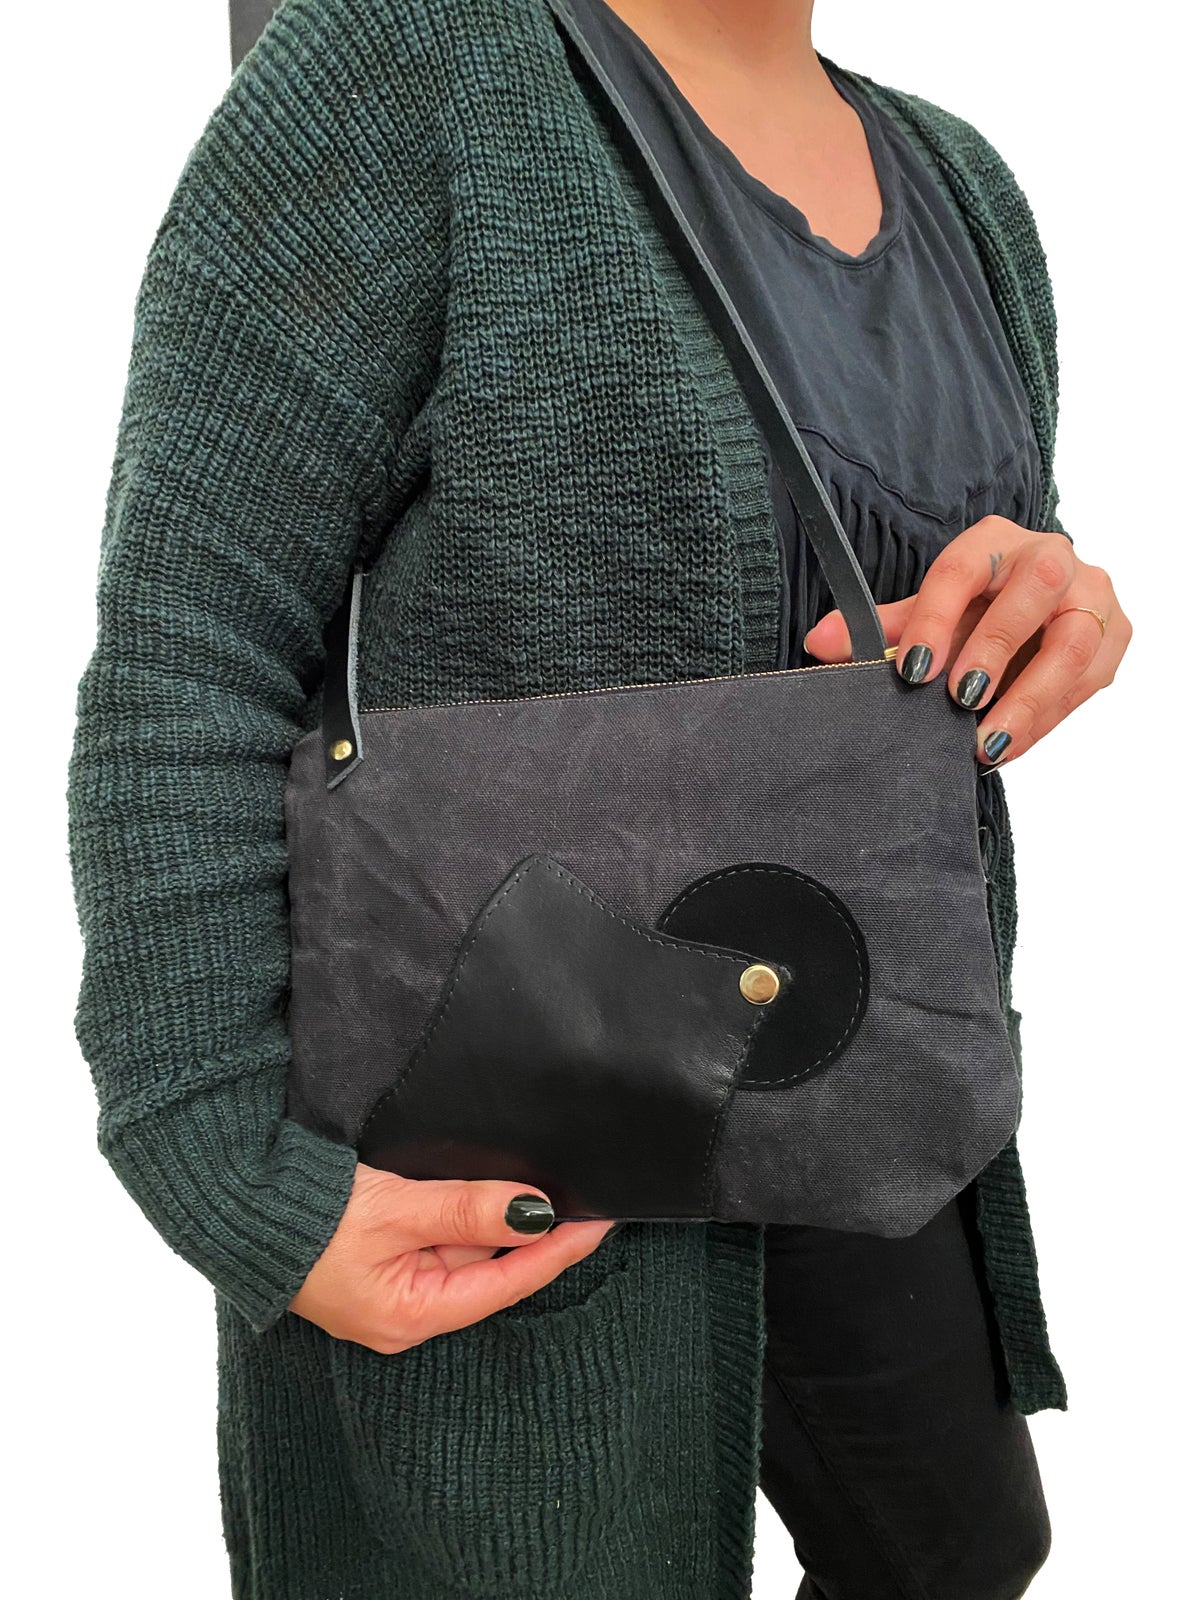 Piece Out- Black Waxed Canvas and Leather Medium Crossbody Bag